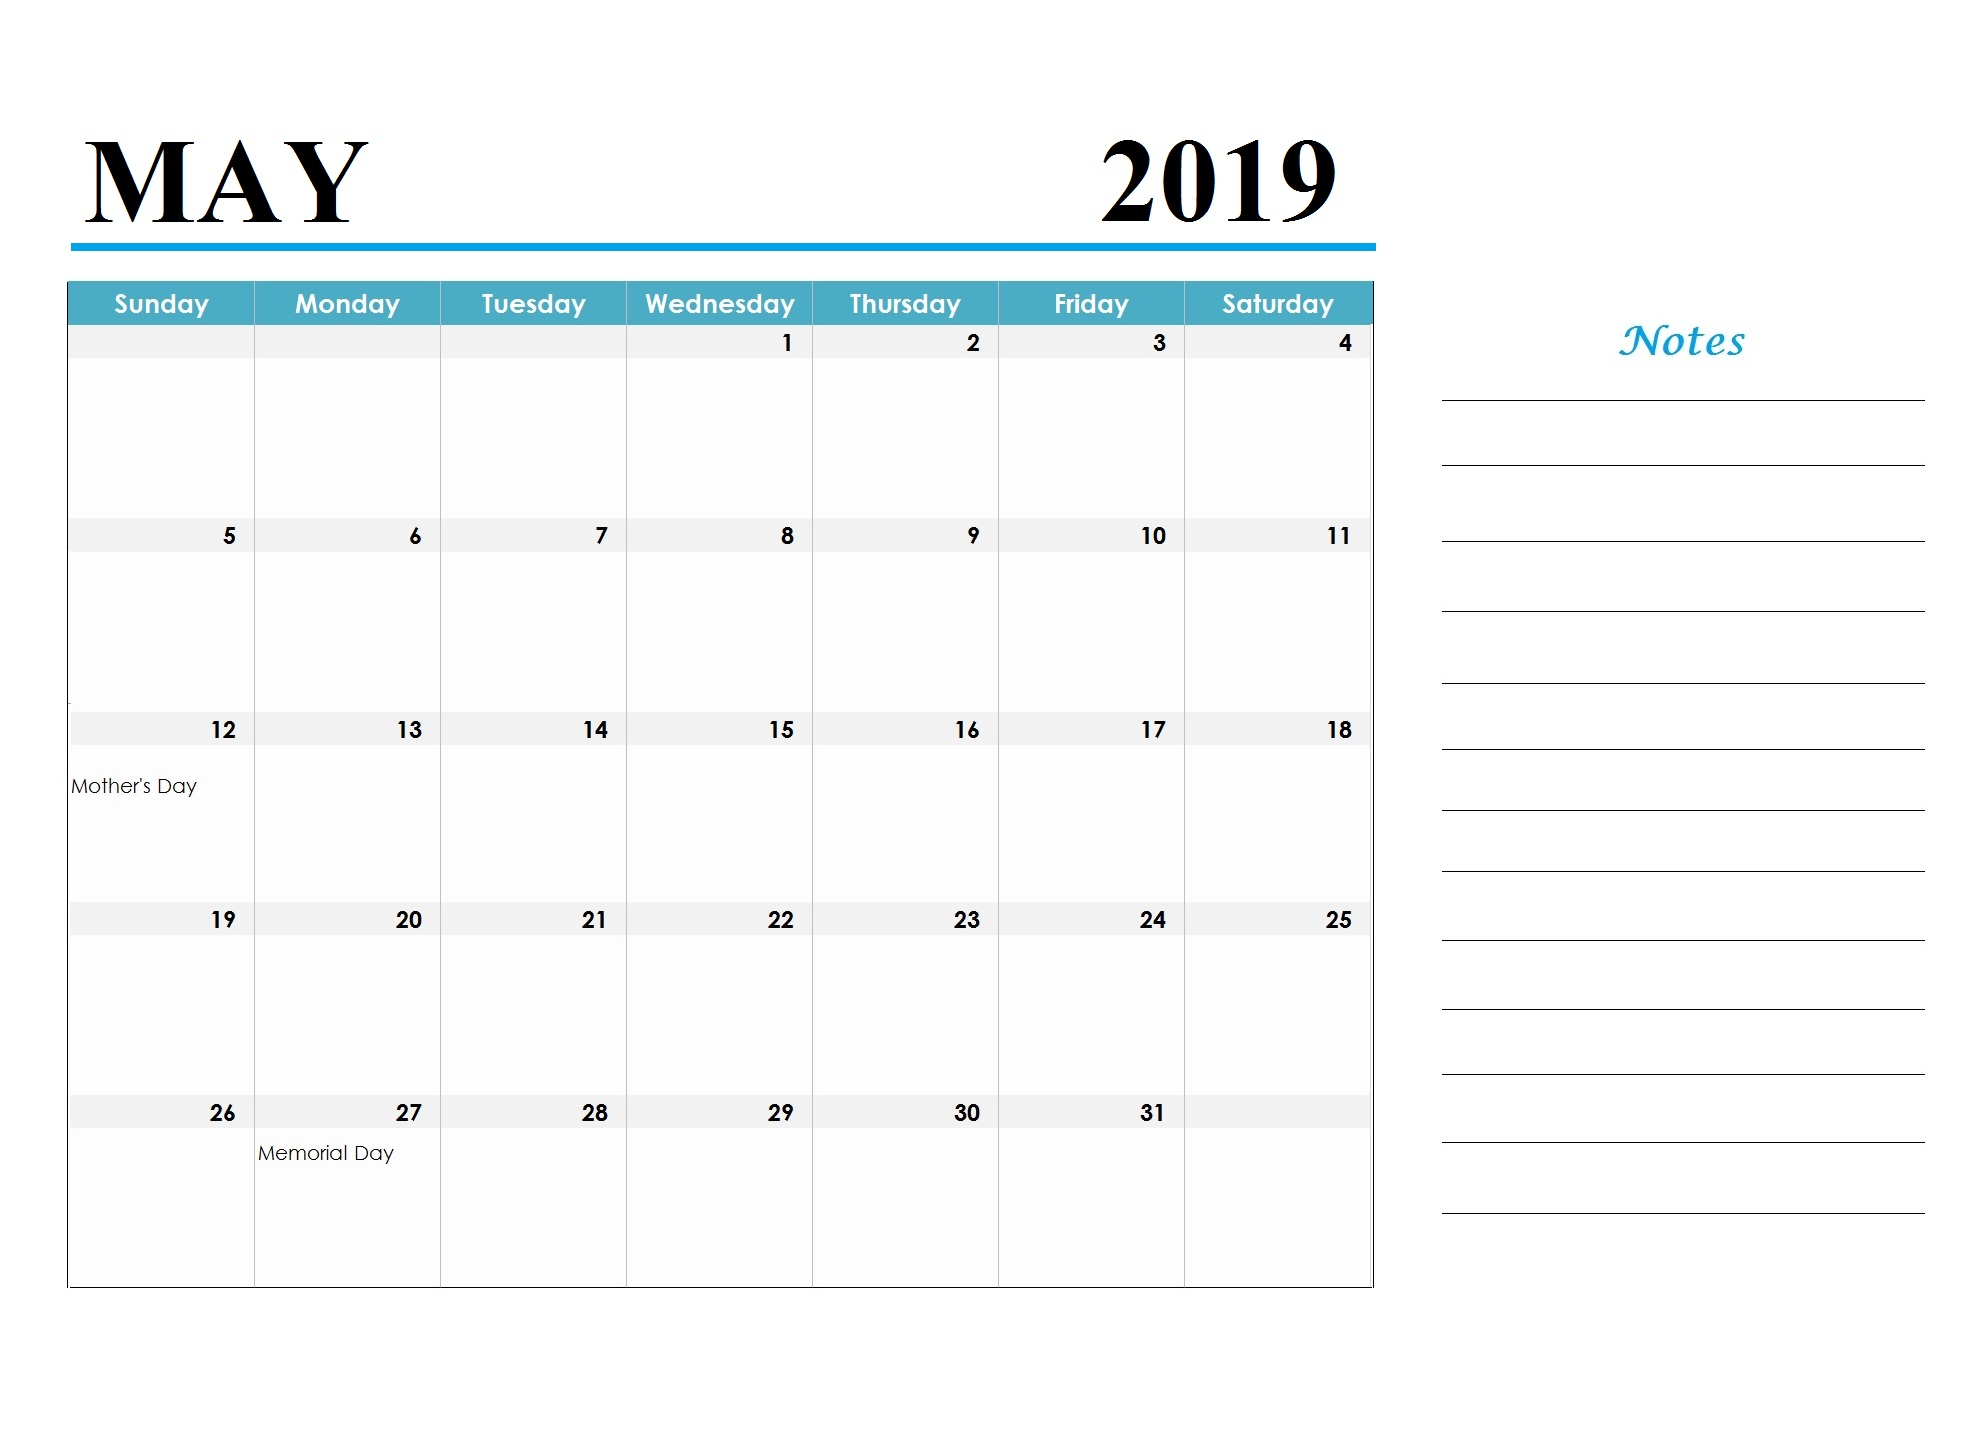 May 2019 Holidays Calendar Template